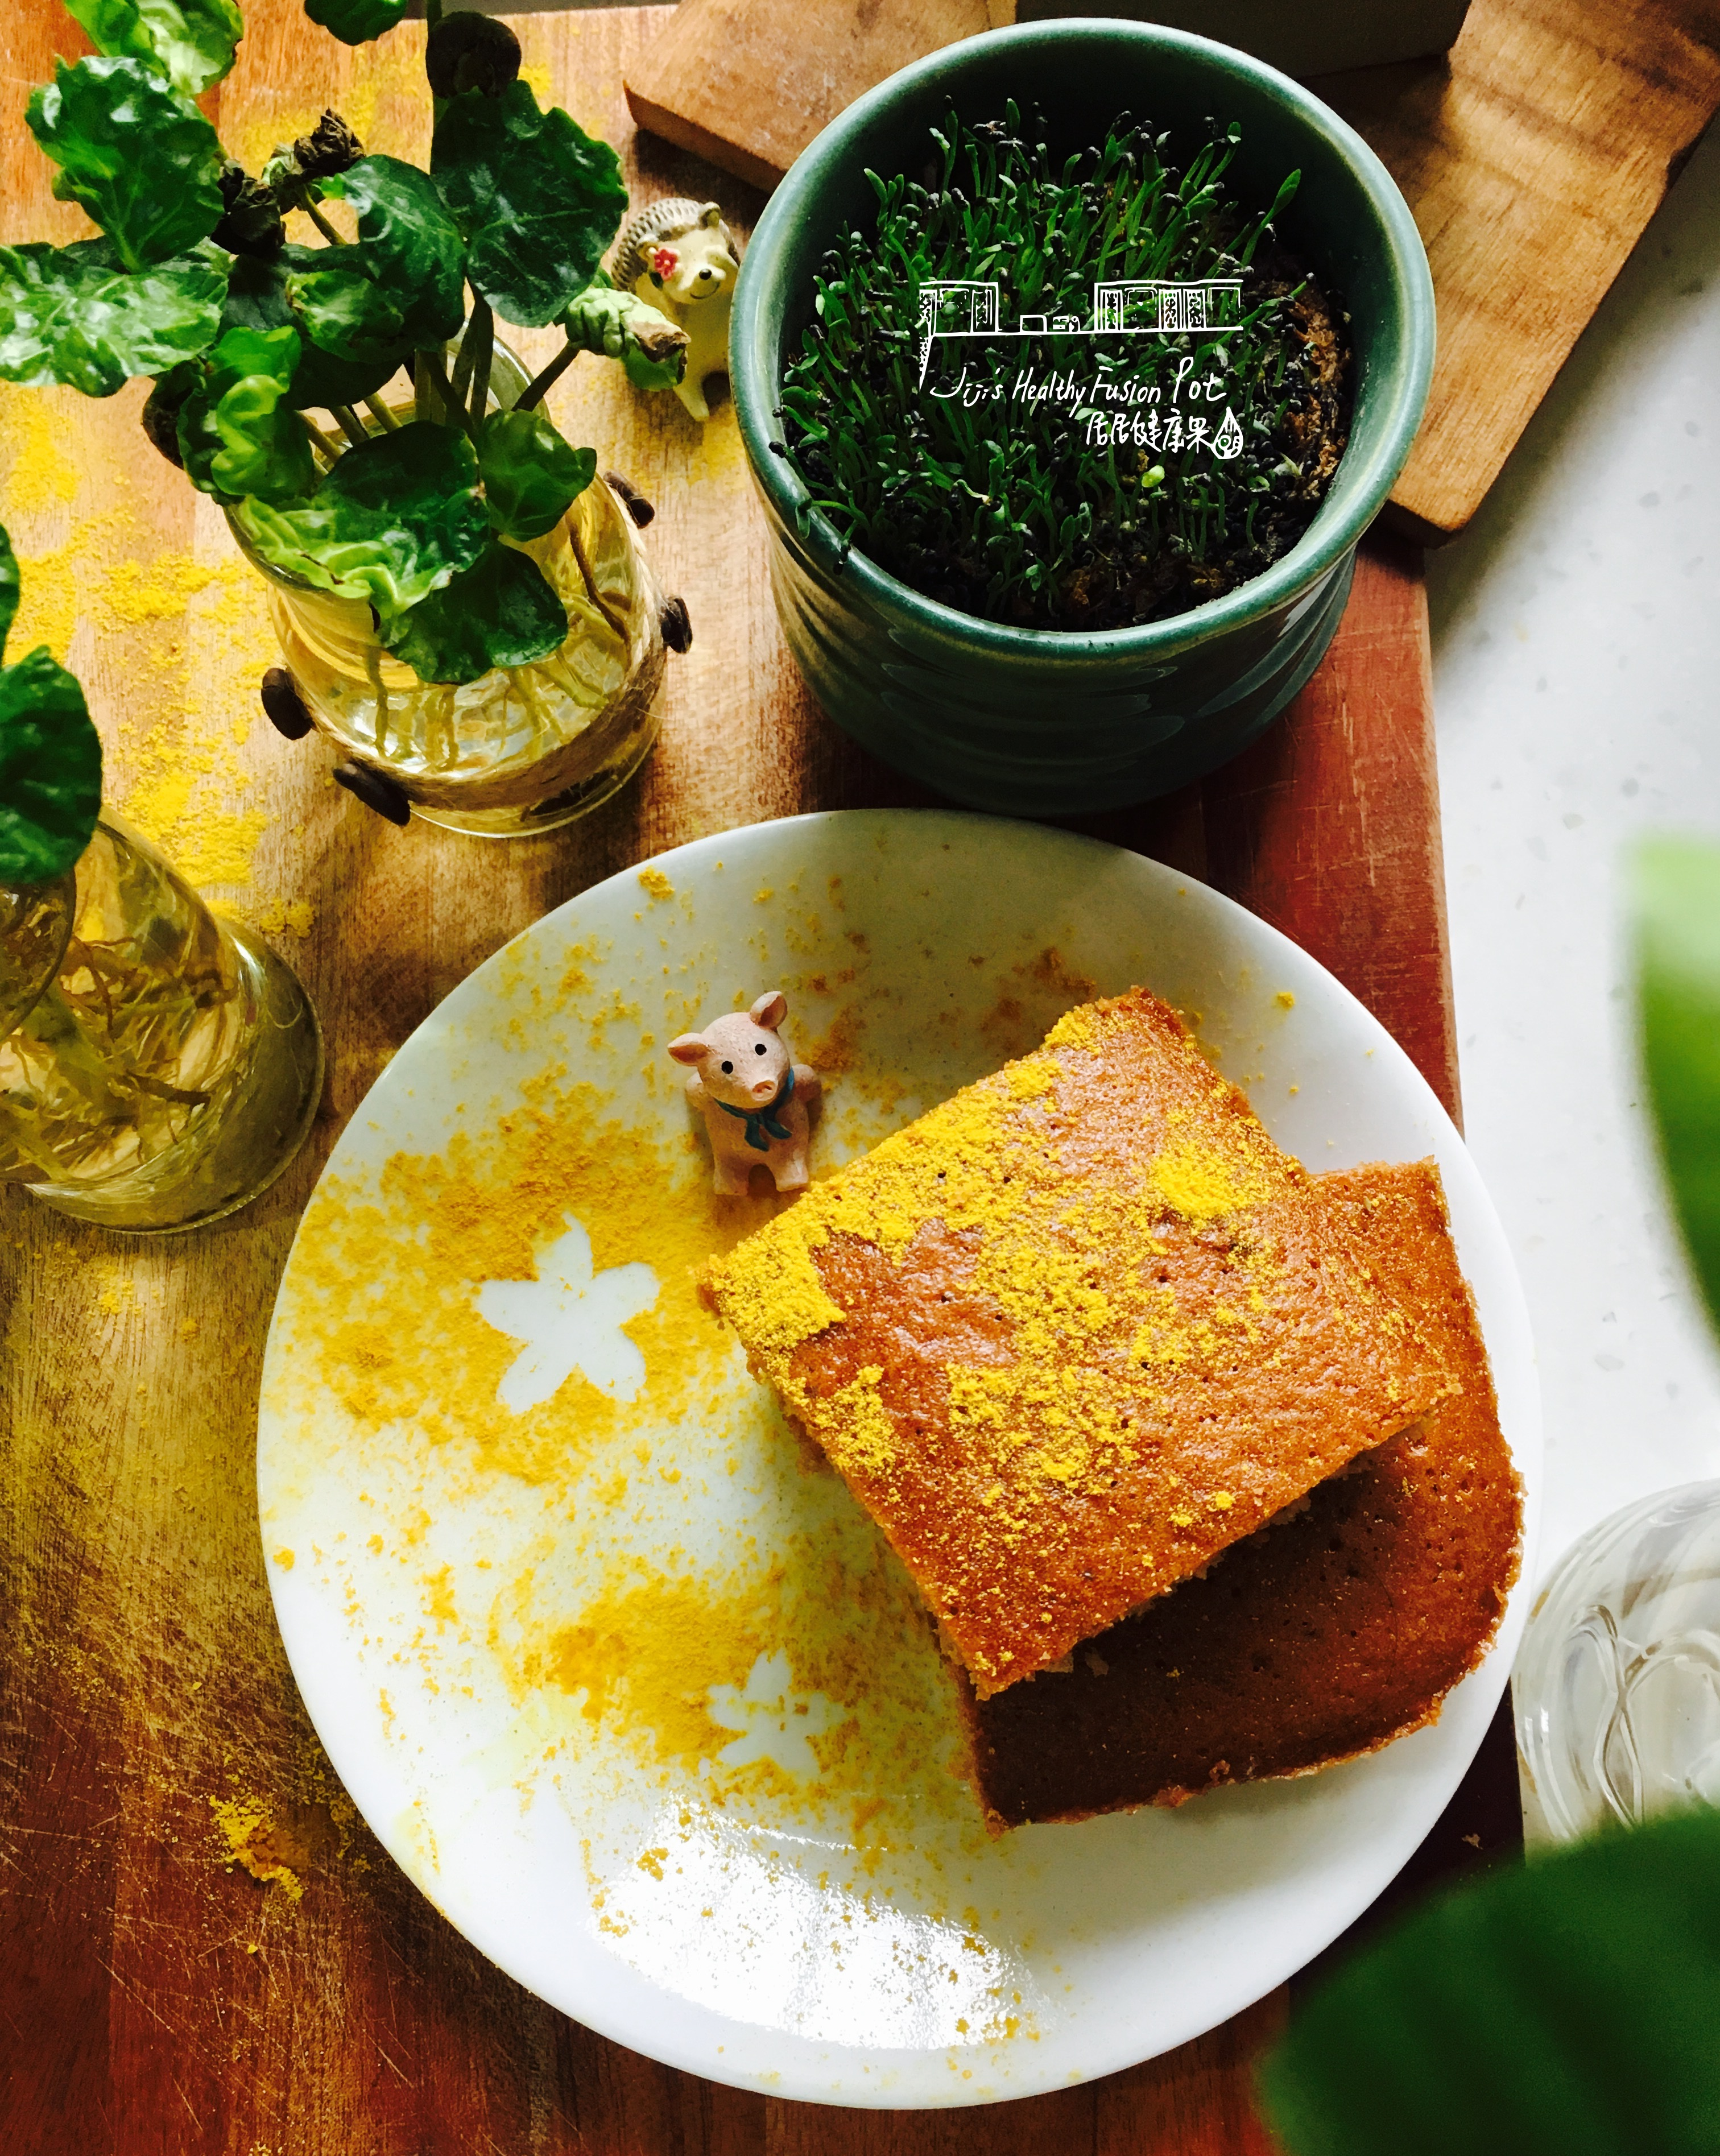 Chinese Five-Spice Ginger Cake